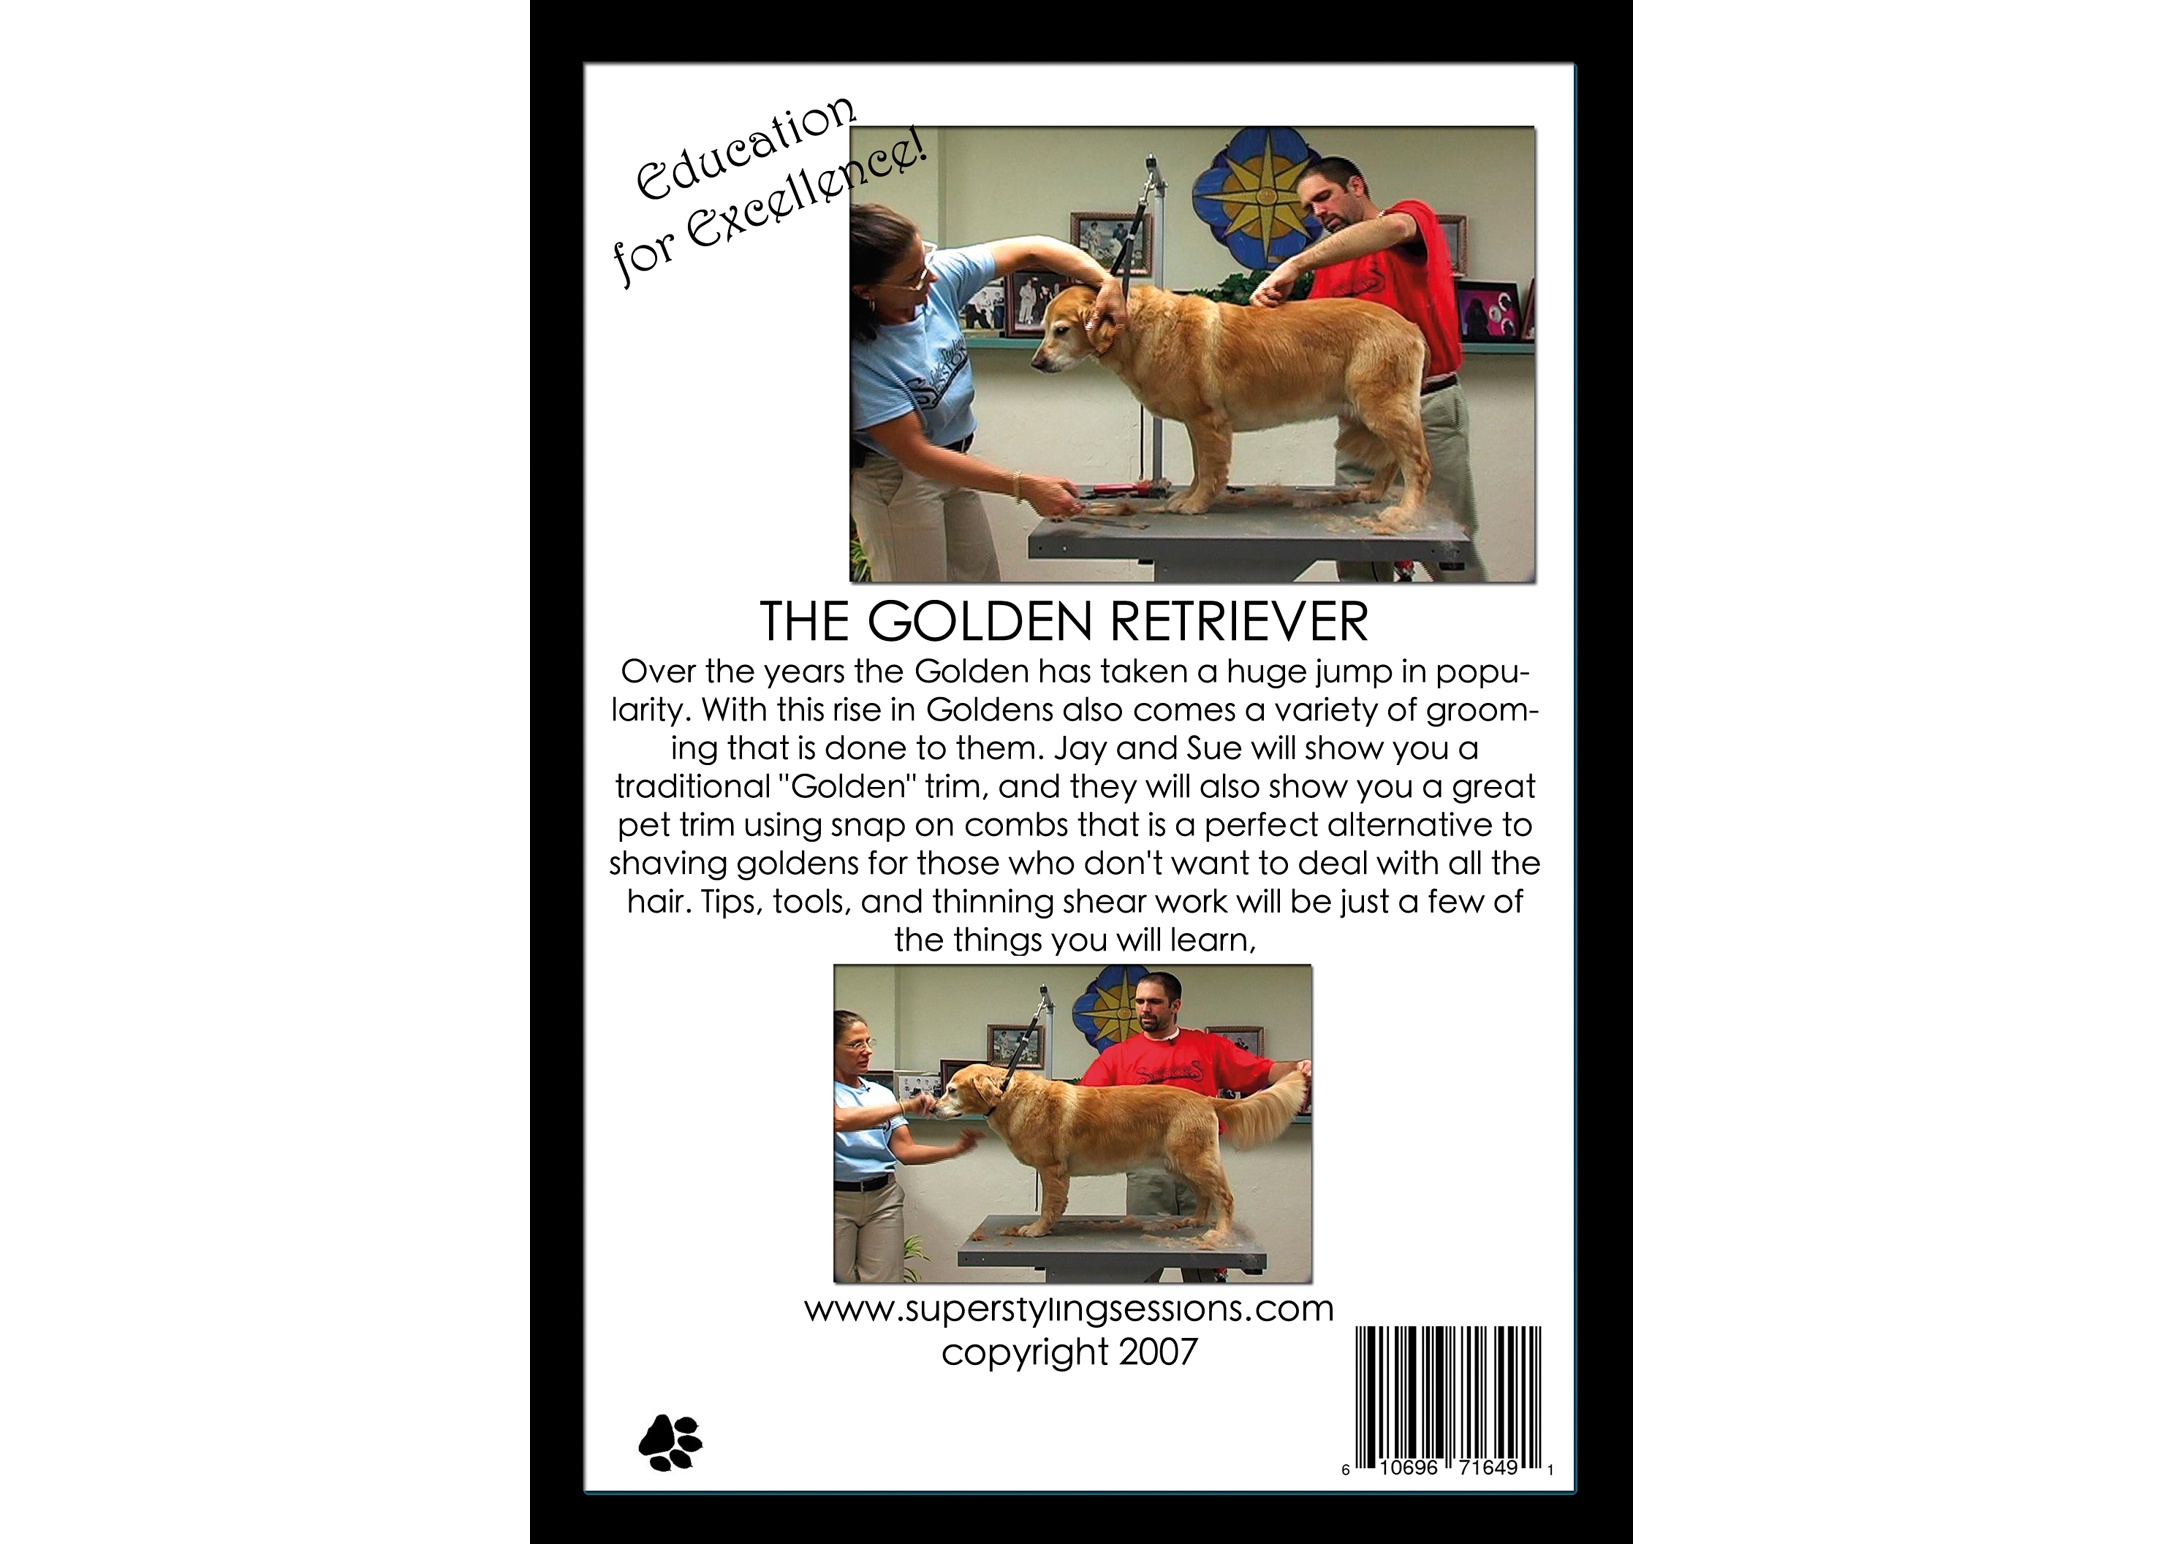 Super Styling Sessions DVD Super Styling Sessions Golden Retriever Educatieve DVD